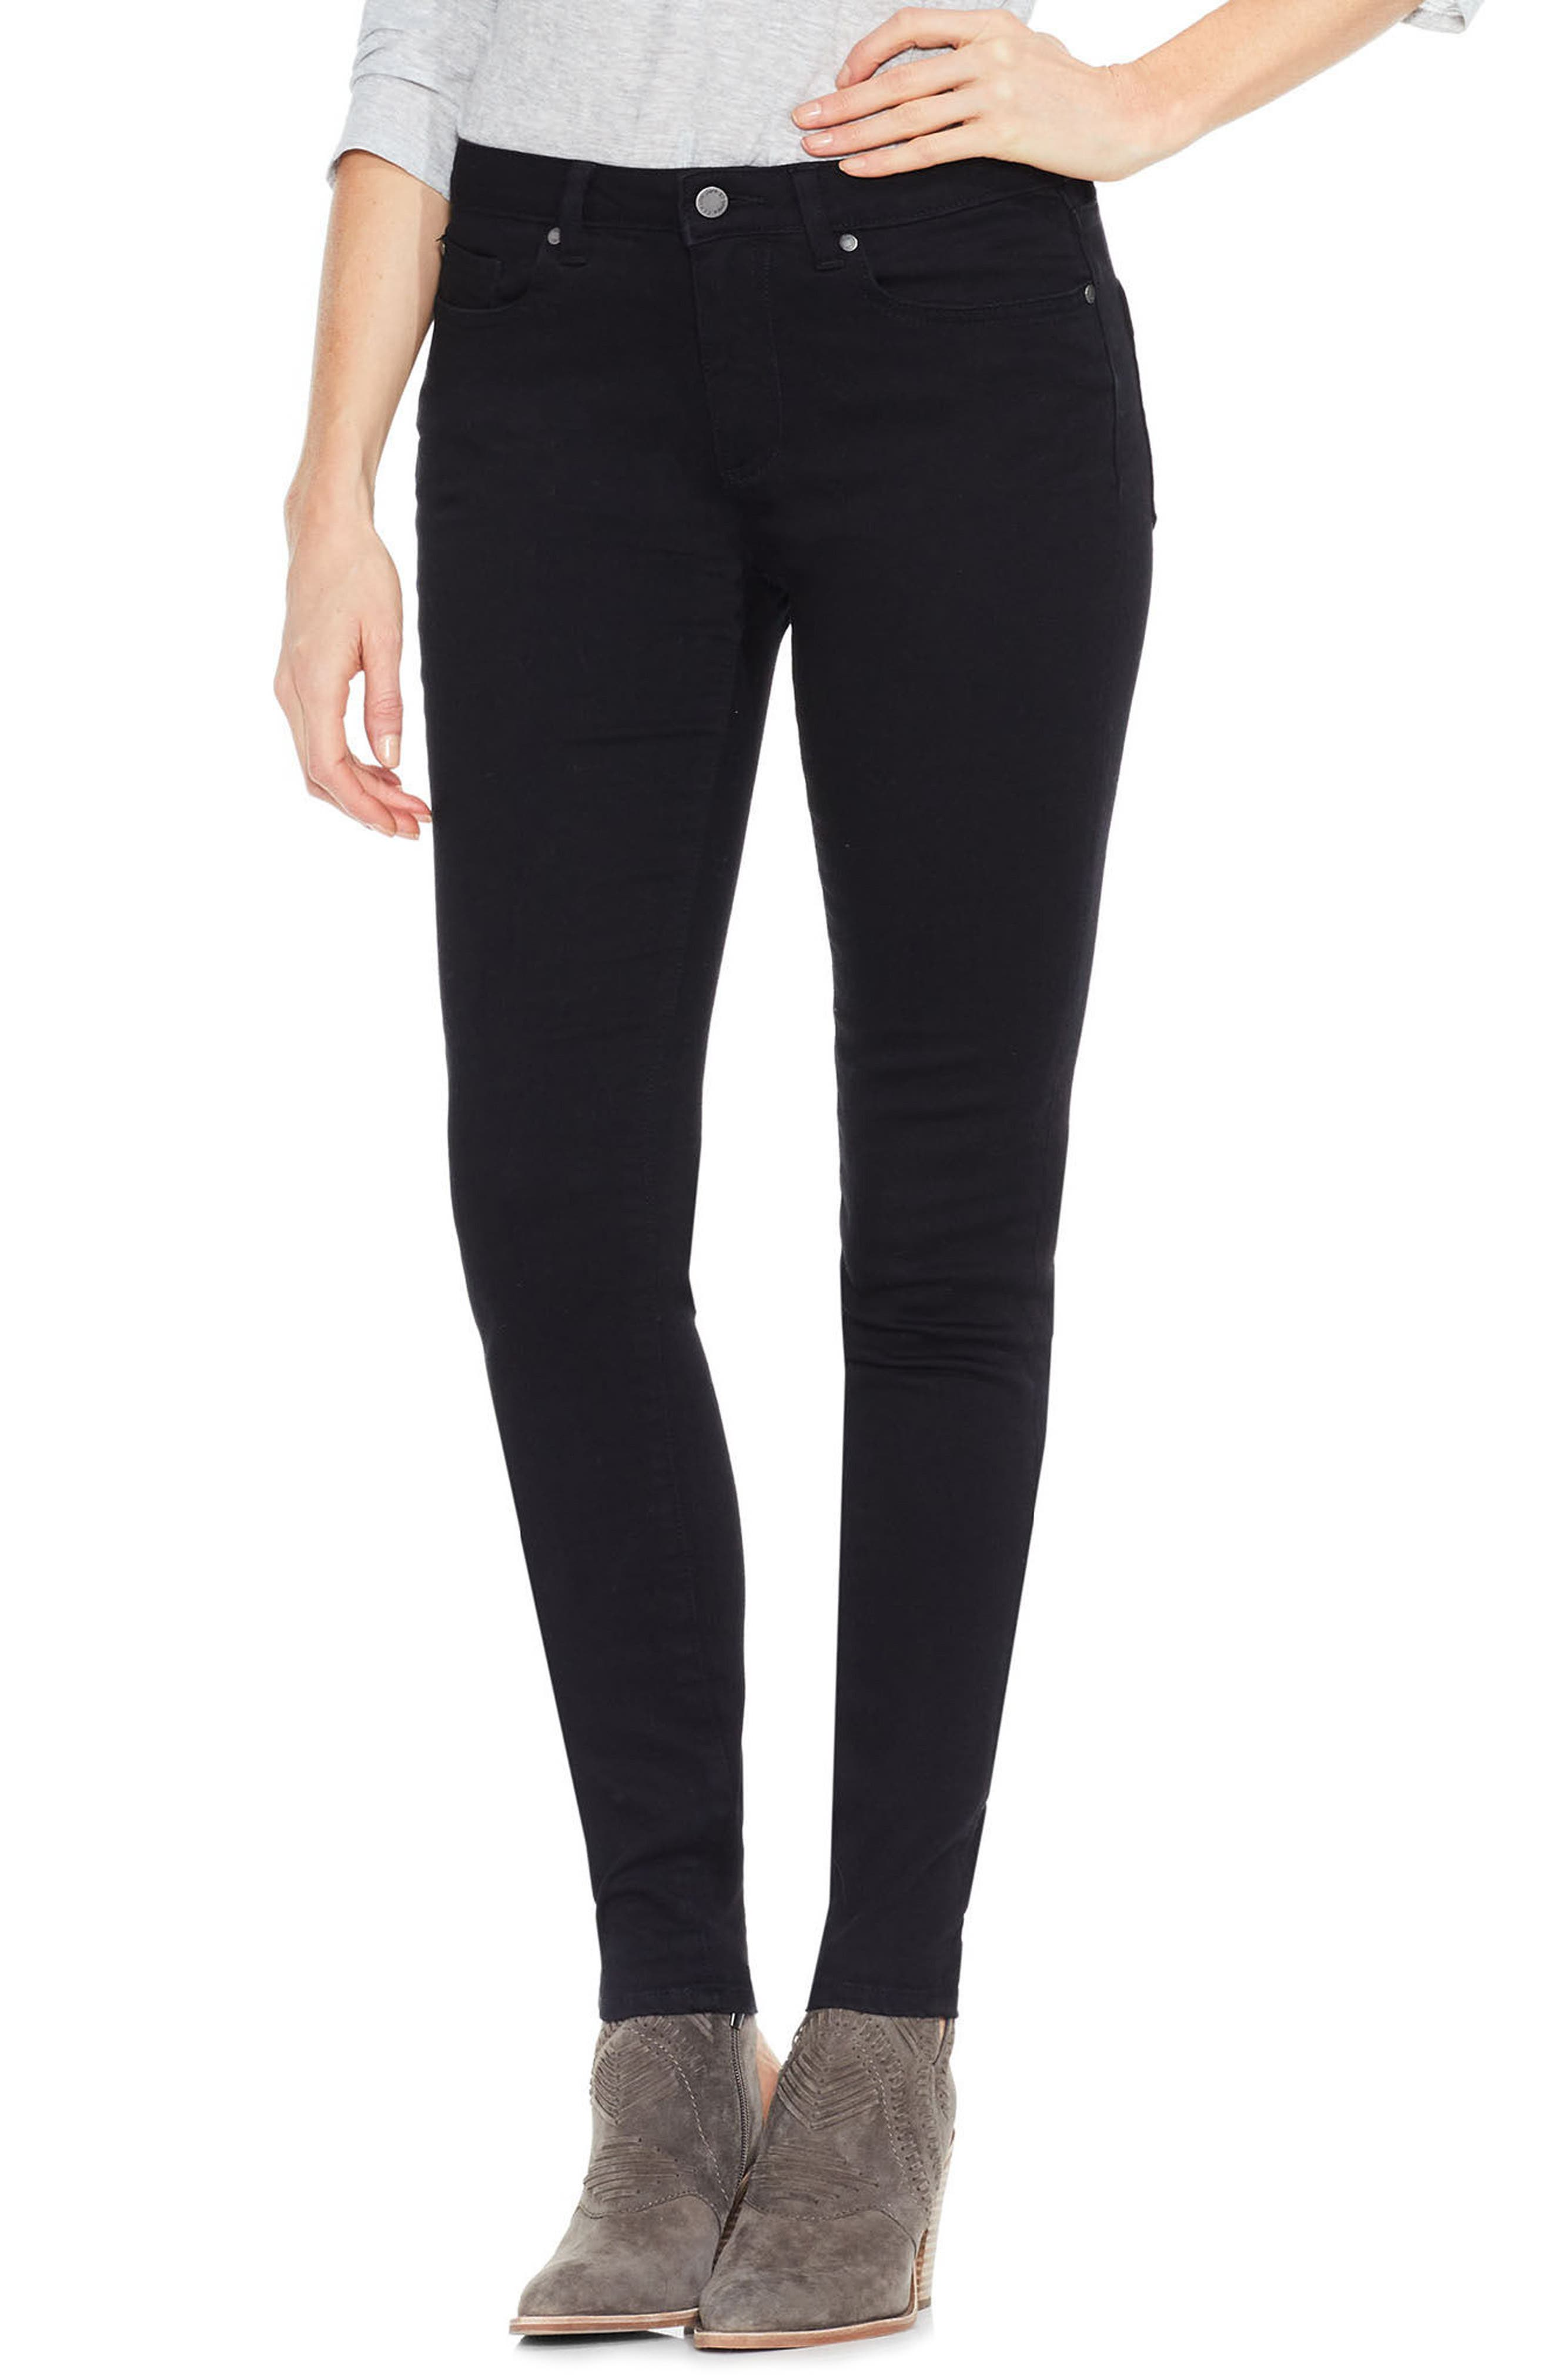 Main Image - Vince Camuto Stretch Skinny Jeans